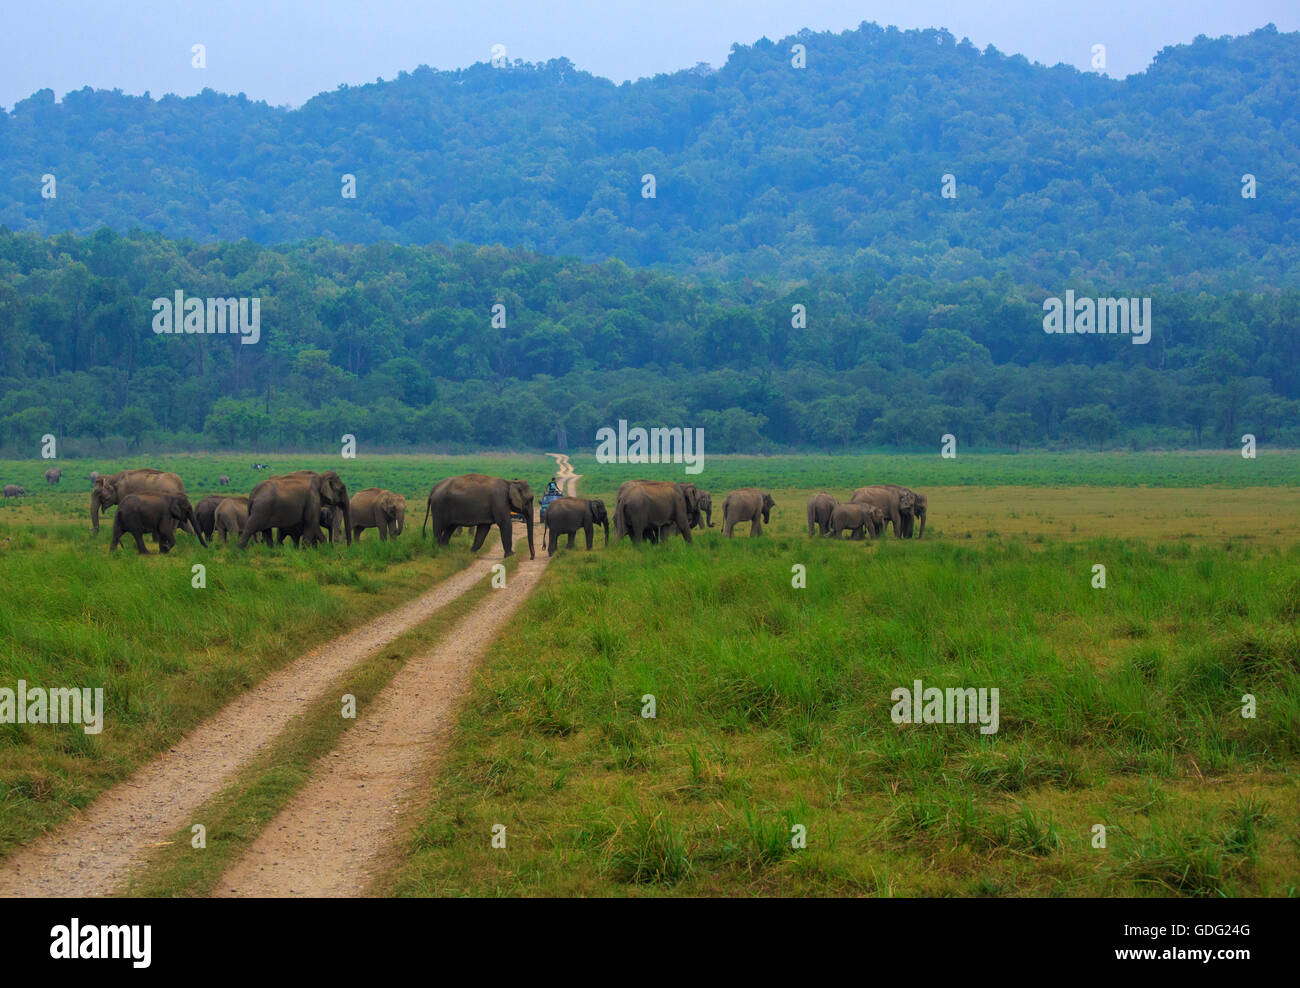 Elephant herd crossing the safari road (Photographed at Corbett National Park, India) - Stock Image